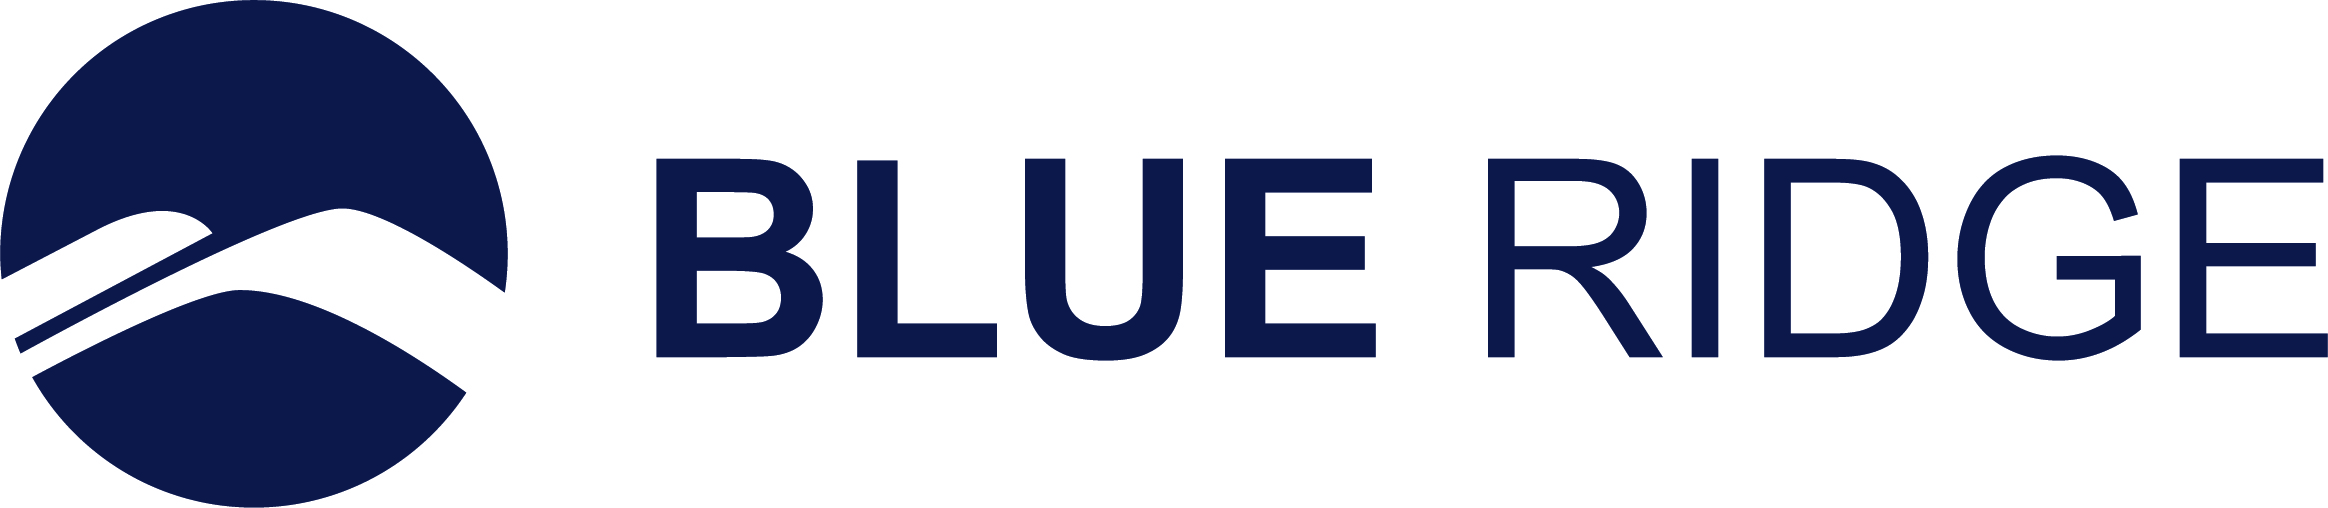 Blue Ridge Acquires Inventory Investment AS, Strengthens Supply Chain Planning and Pricing Platform